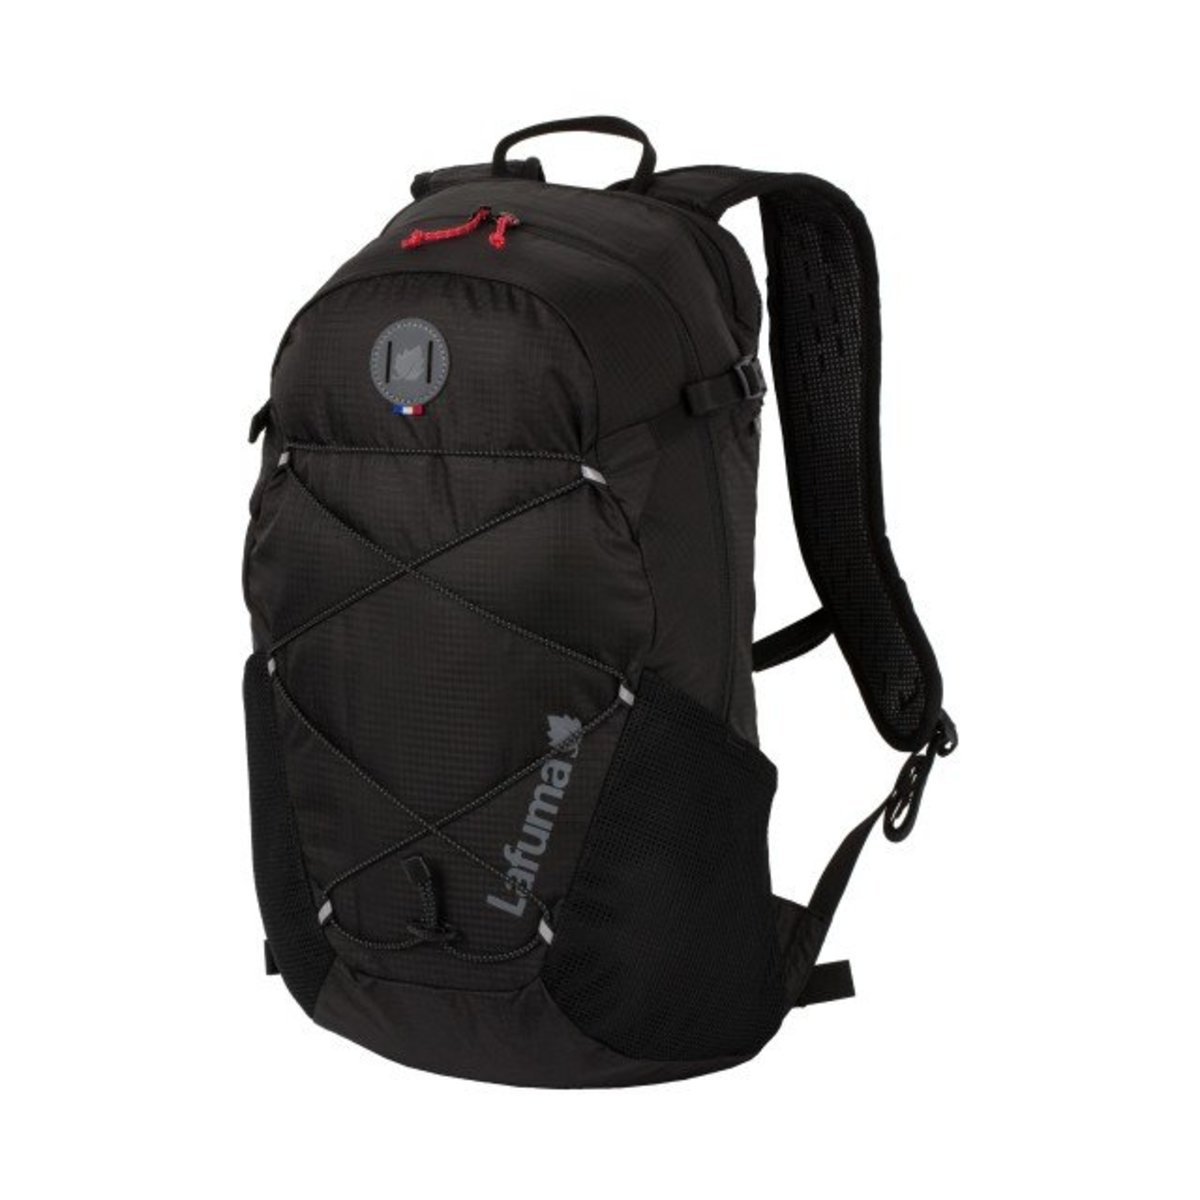 LFS6347 ACTIVE 24 Backpack